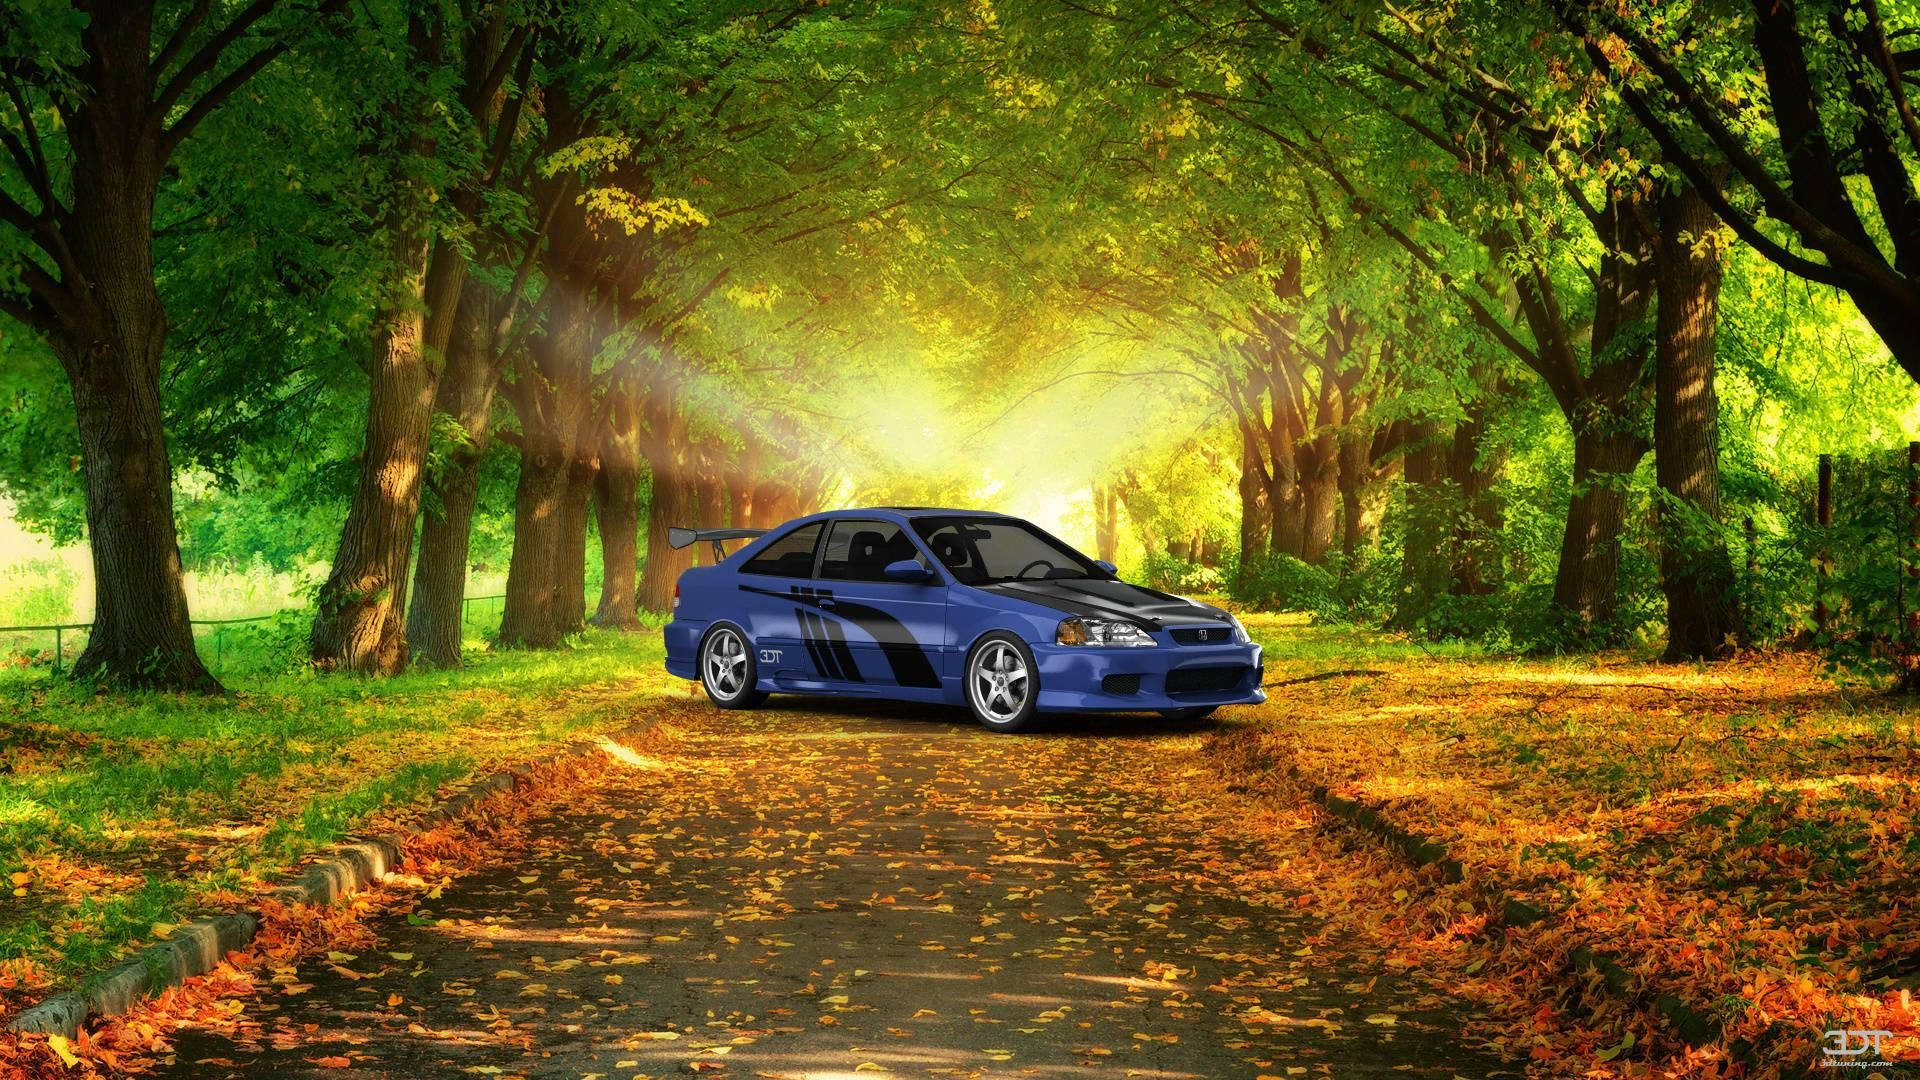 Checkout my tuning volkswagen golf4 2003 at 3dtuning 3dtuning tuning dada pinterest volkswagen golf volkswagen and hatchbacks